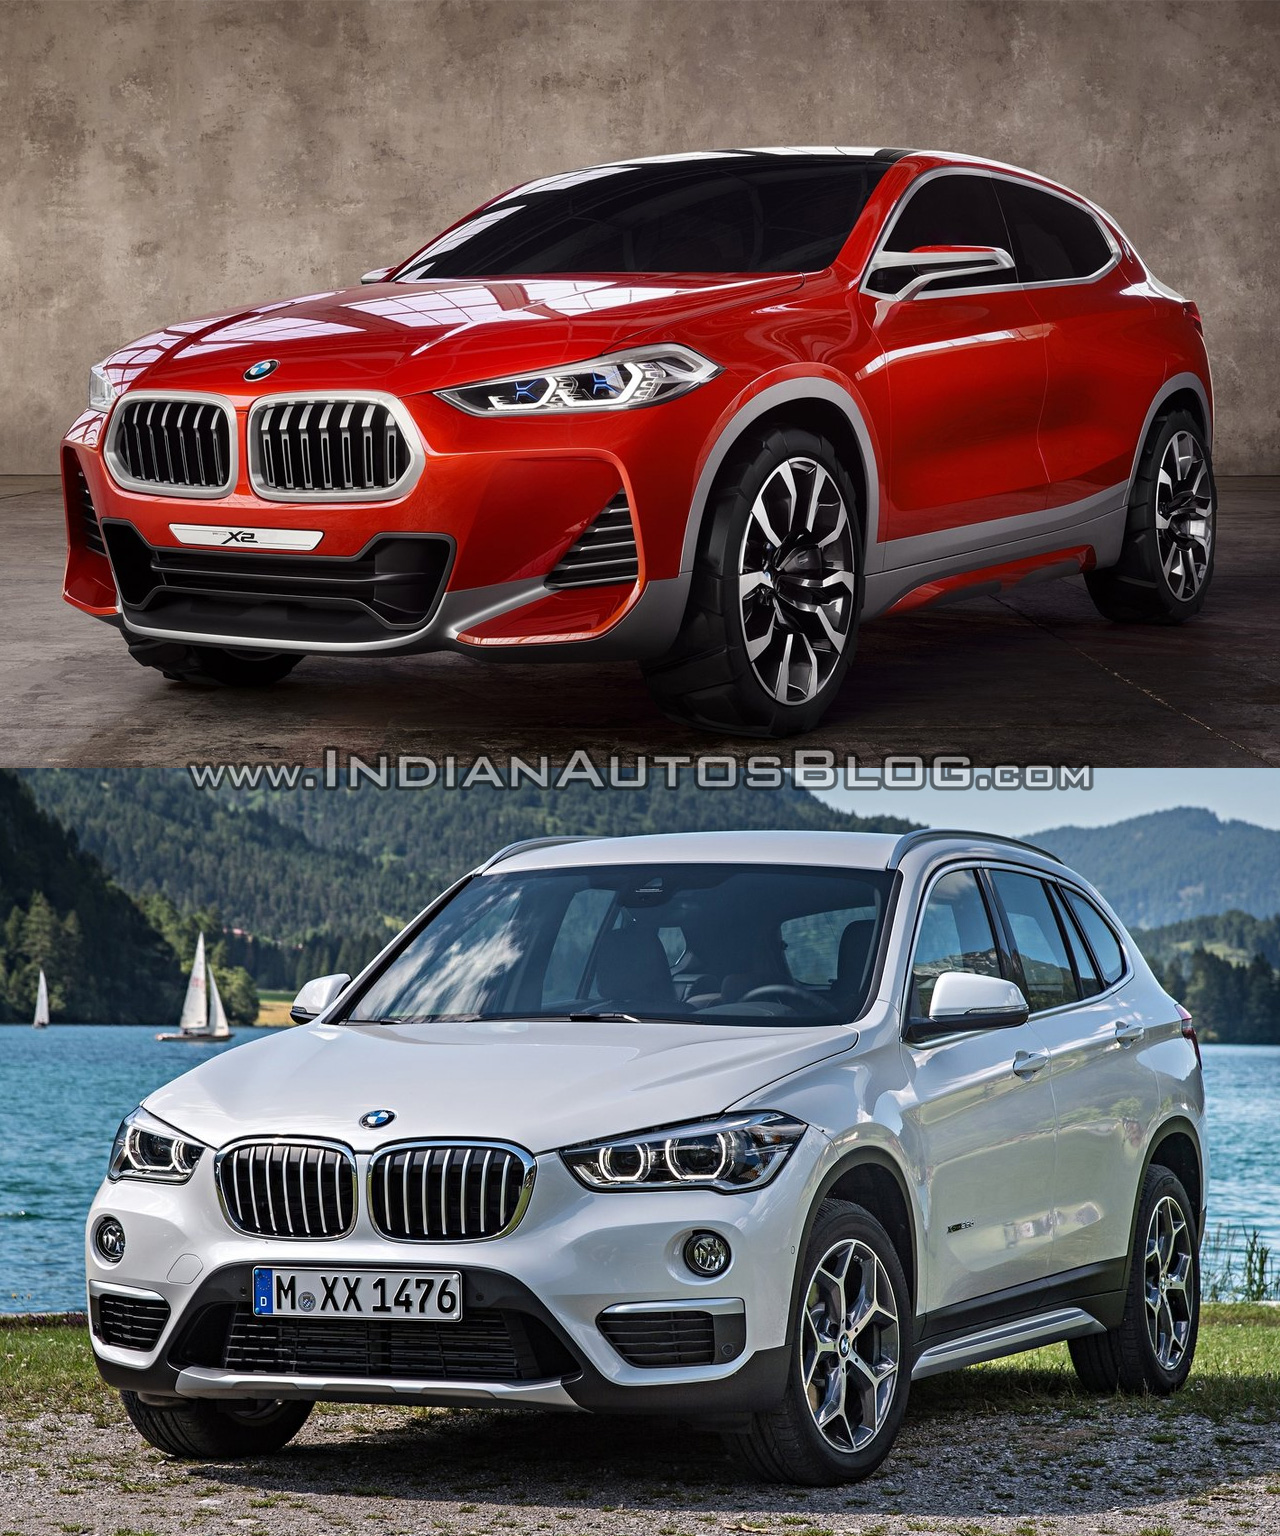 Bmw X2 Vs Bmw X1 In Images